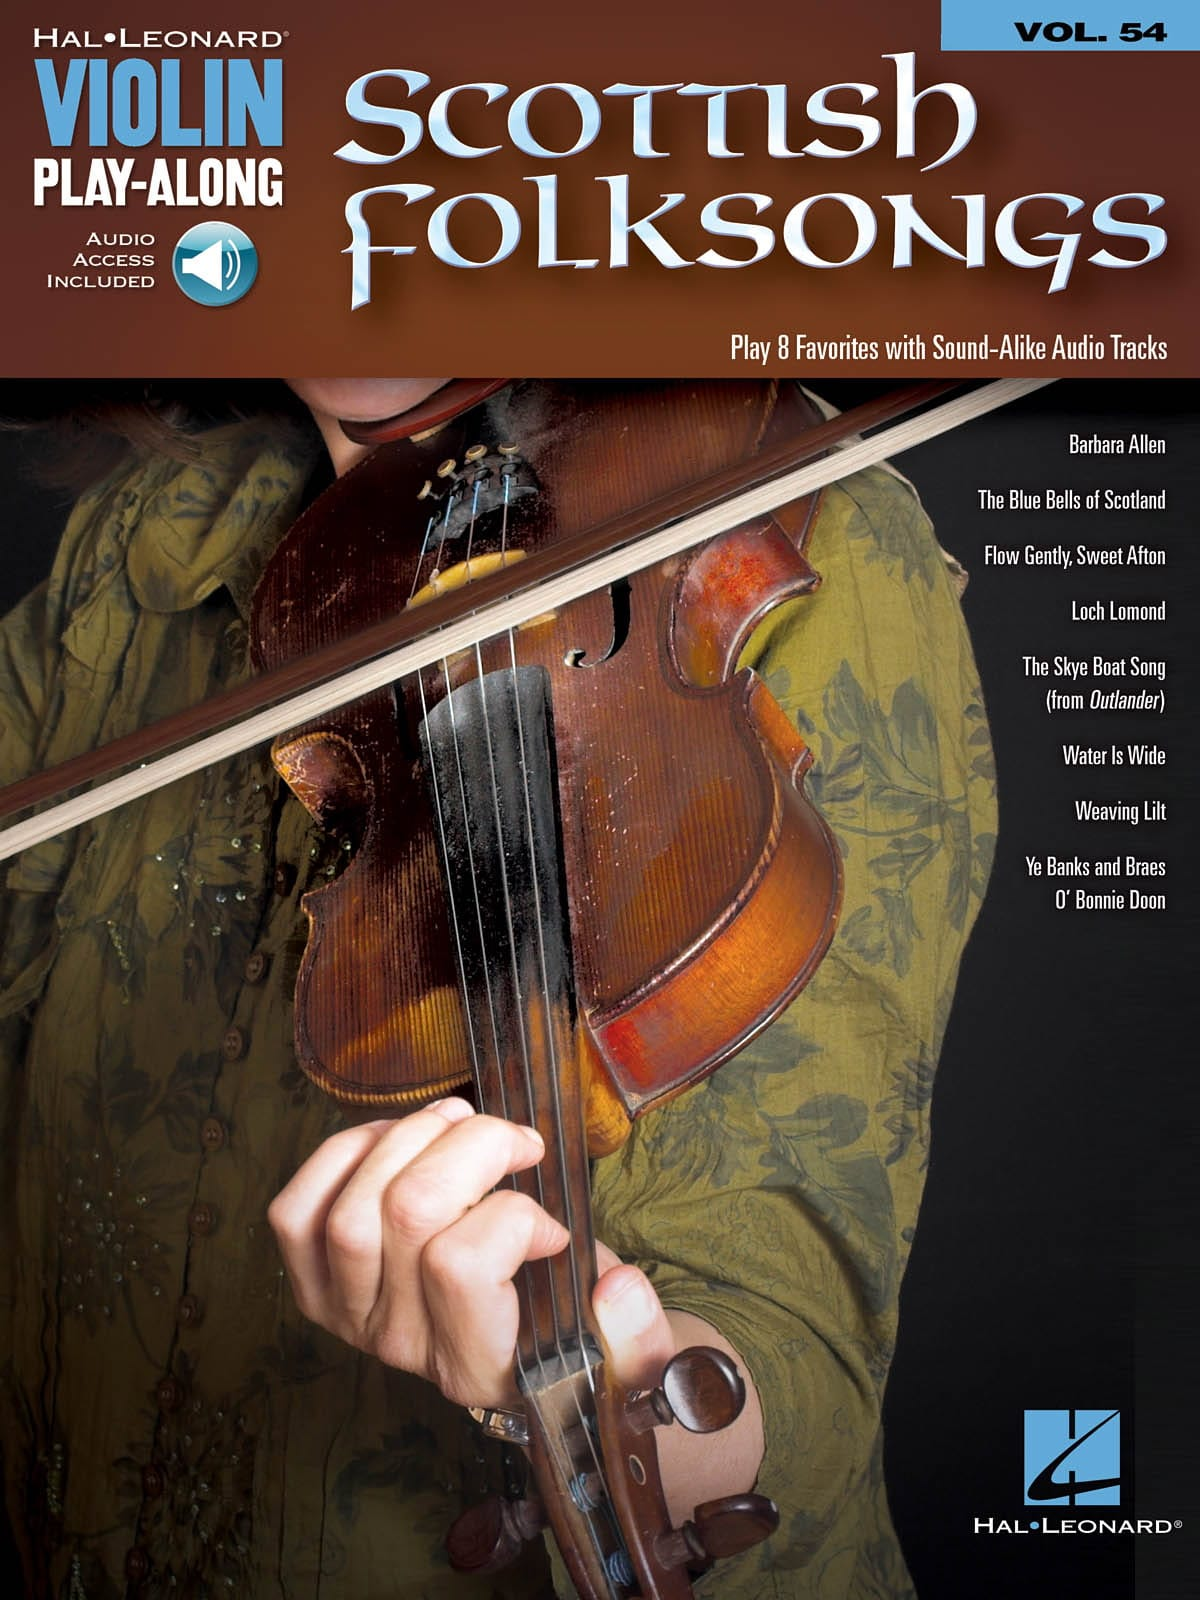 Violin Play-Along Volume 54 Scottish Folksongs - laflutedepan.com